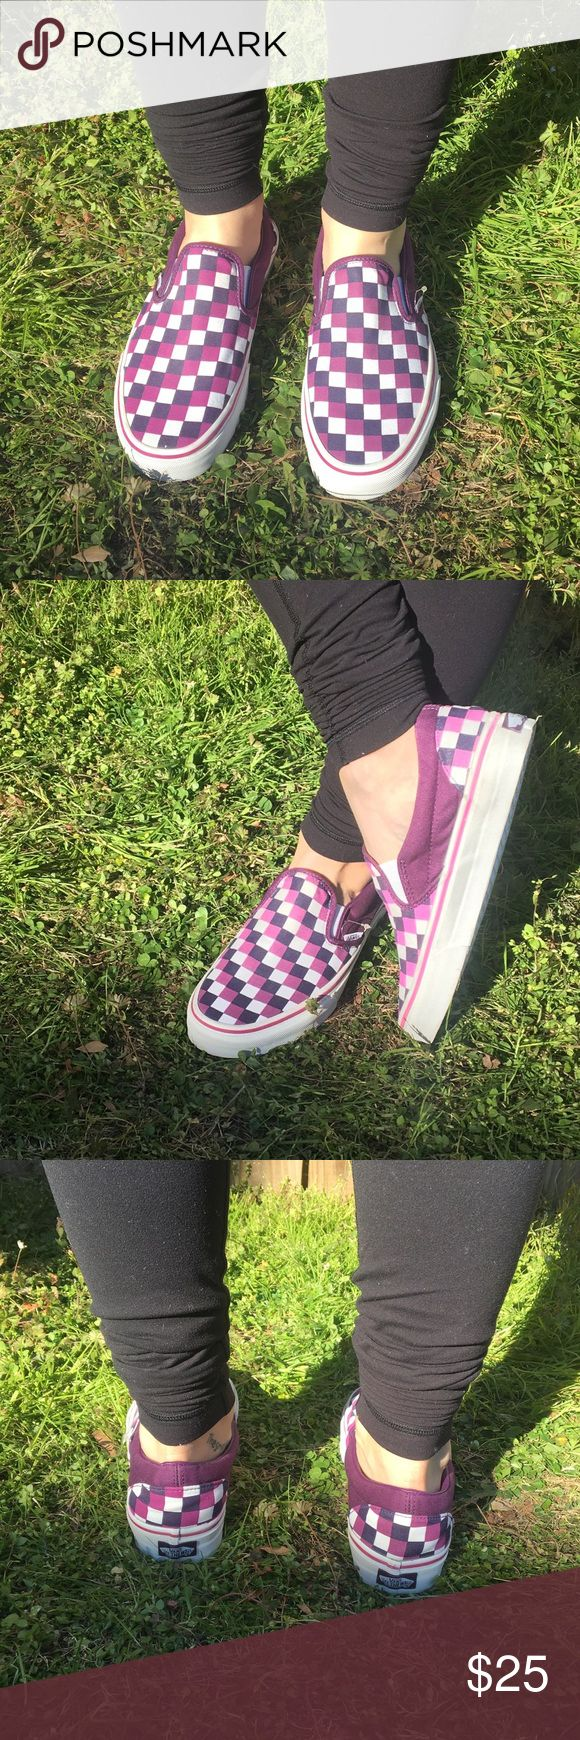 Checkered Vans Like New! Checkered slip on vans women's 9 1/2 Tiffany blue on the inside purple white and plum colors on the outside. Only worn once excellent condition Vans Shoes Sneakers